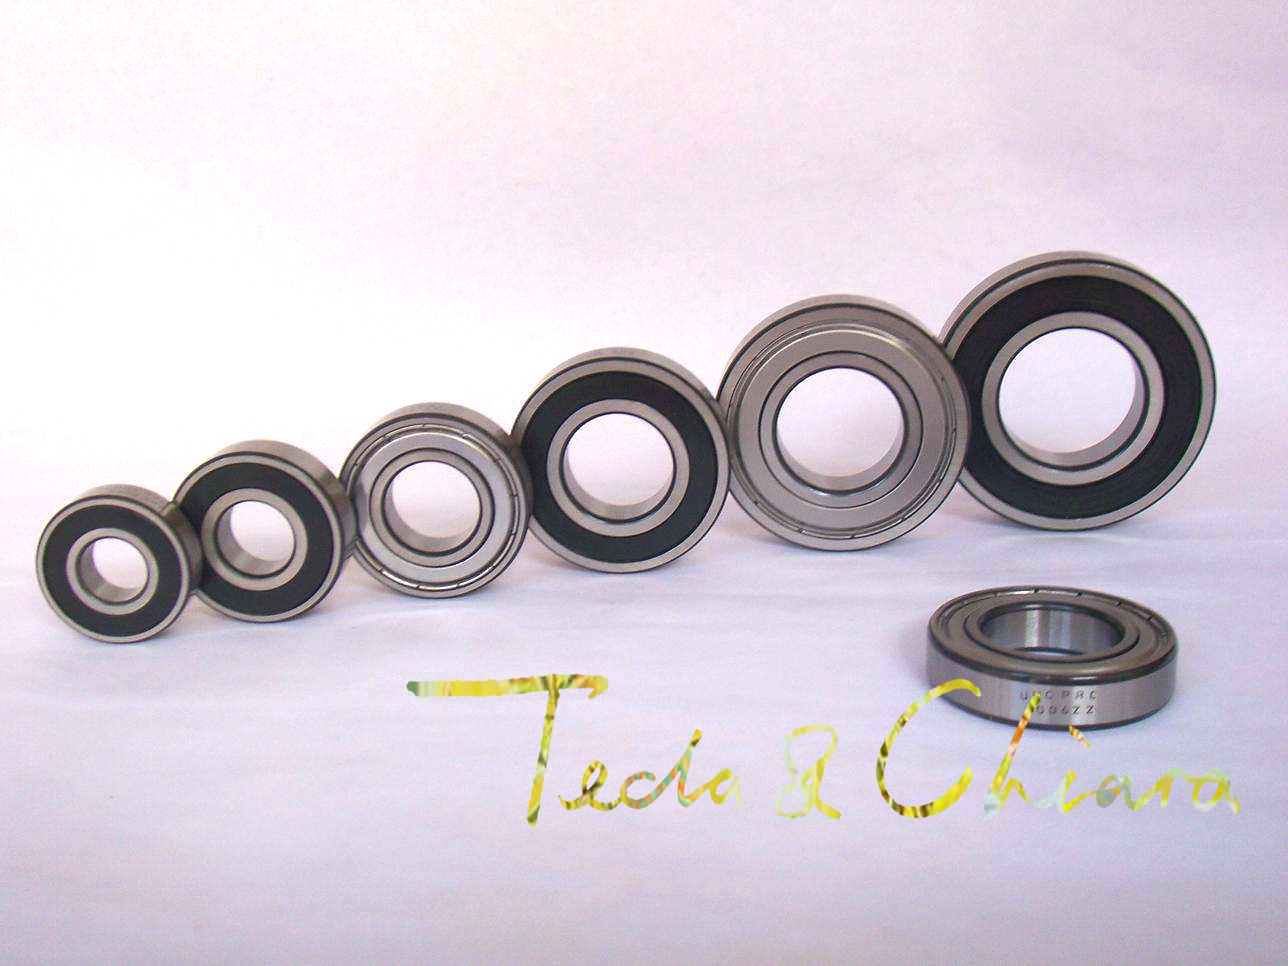 Bearings 10pcs 1lot R166 R166zz R166rs R166-2rs Zz Rs Rz 2rz Deep Groove Ball Bearings 4.7625 X 9.525 X 3.175mm 3/16 X 3/8 X 1/8 Promoting Health And Curing Diseases